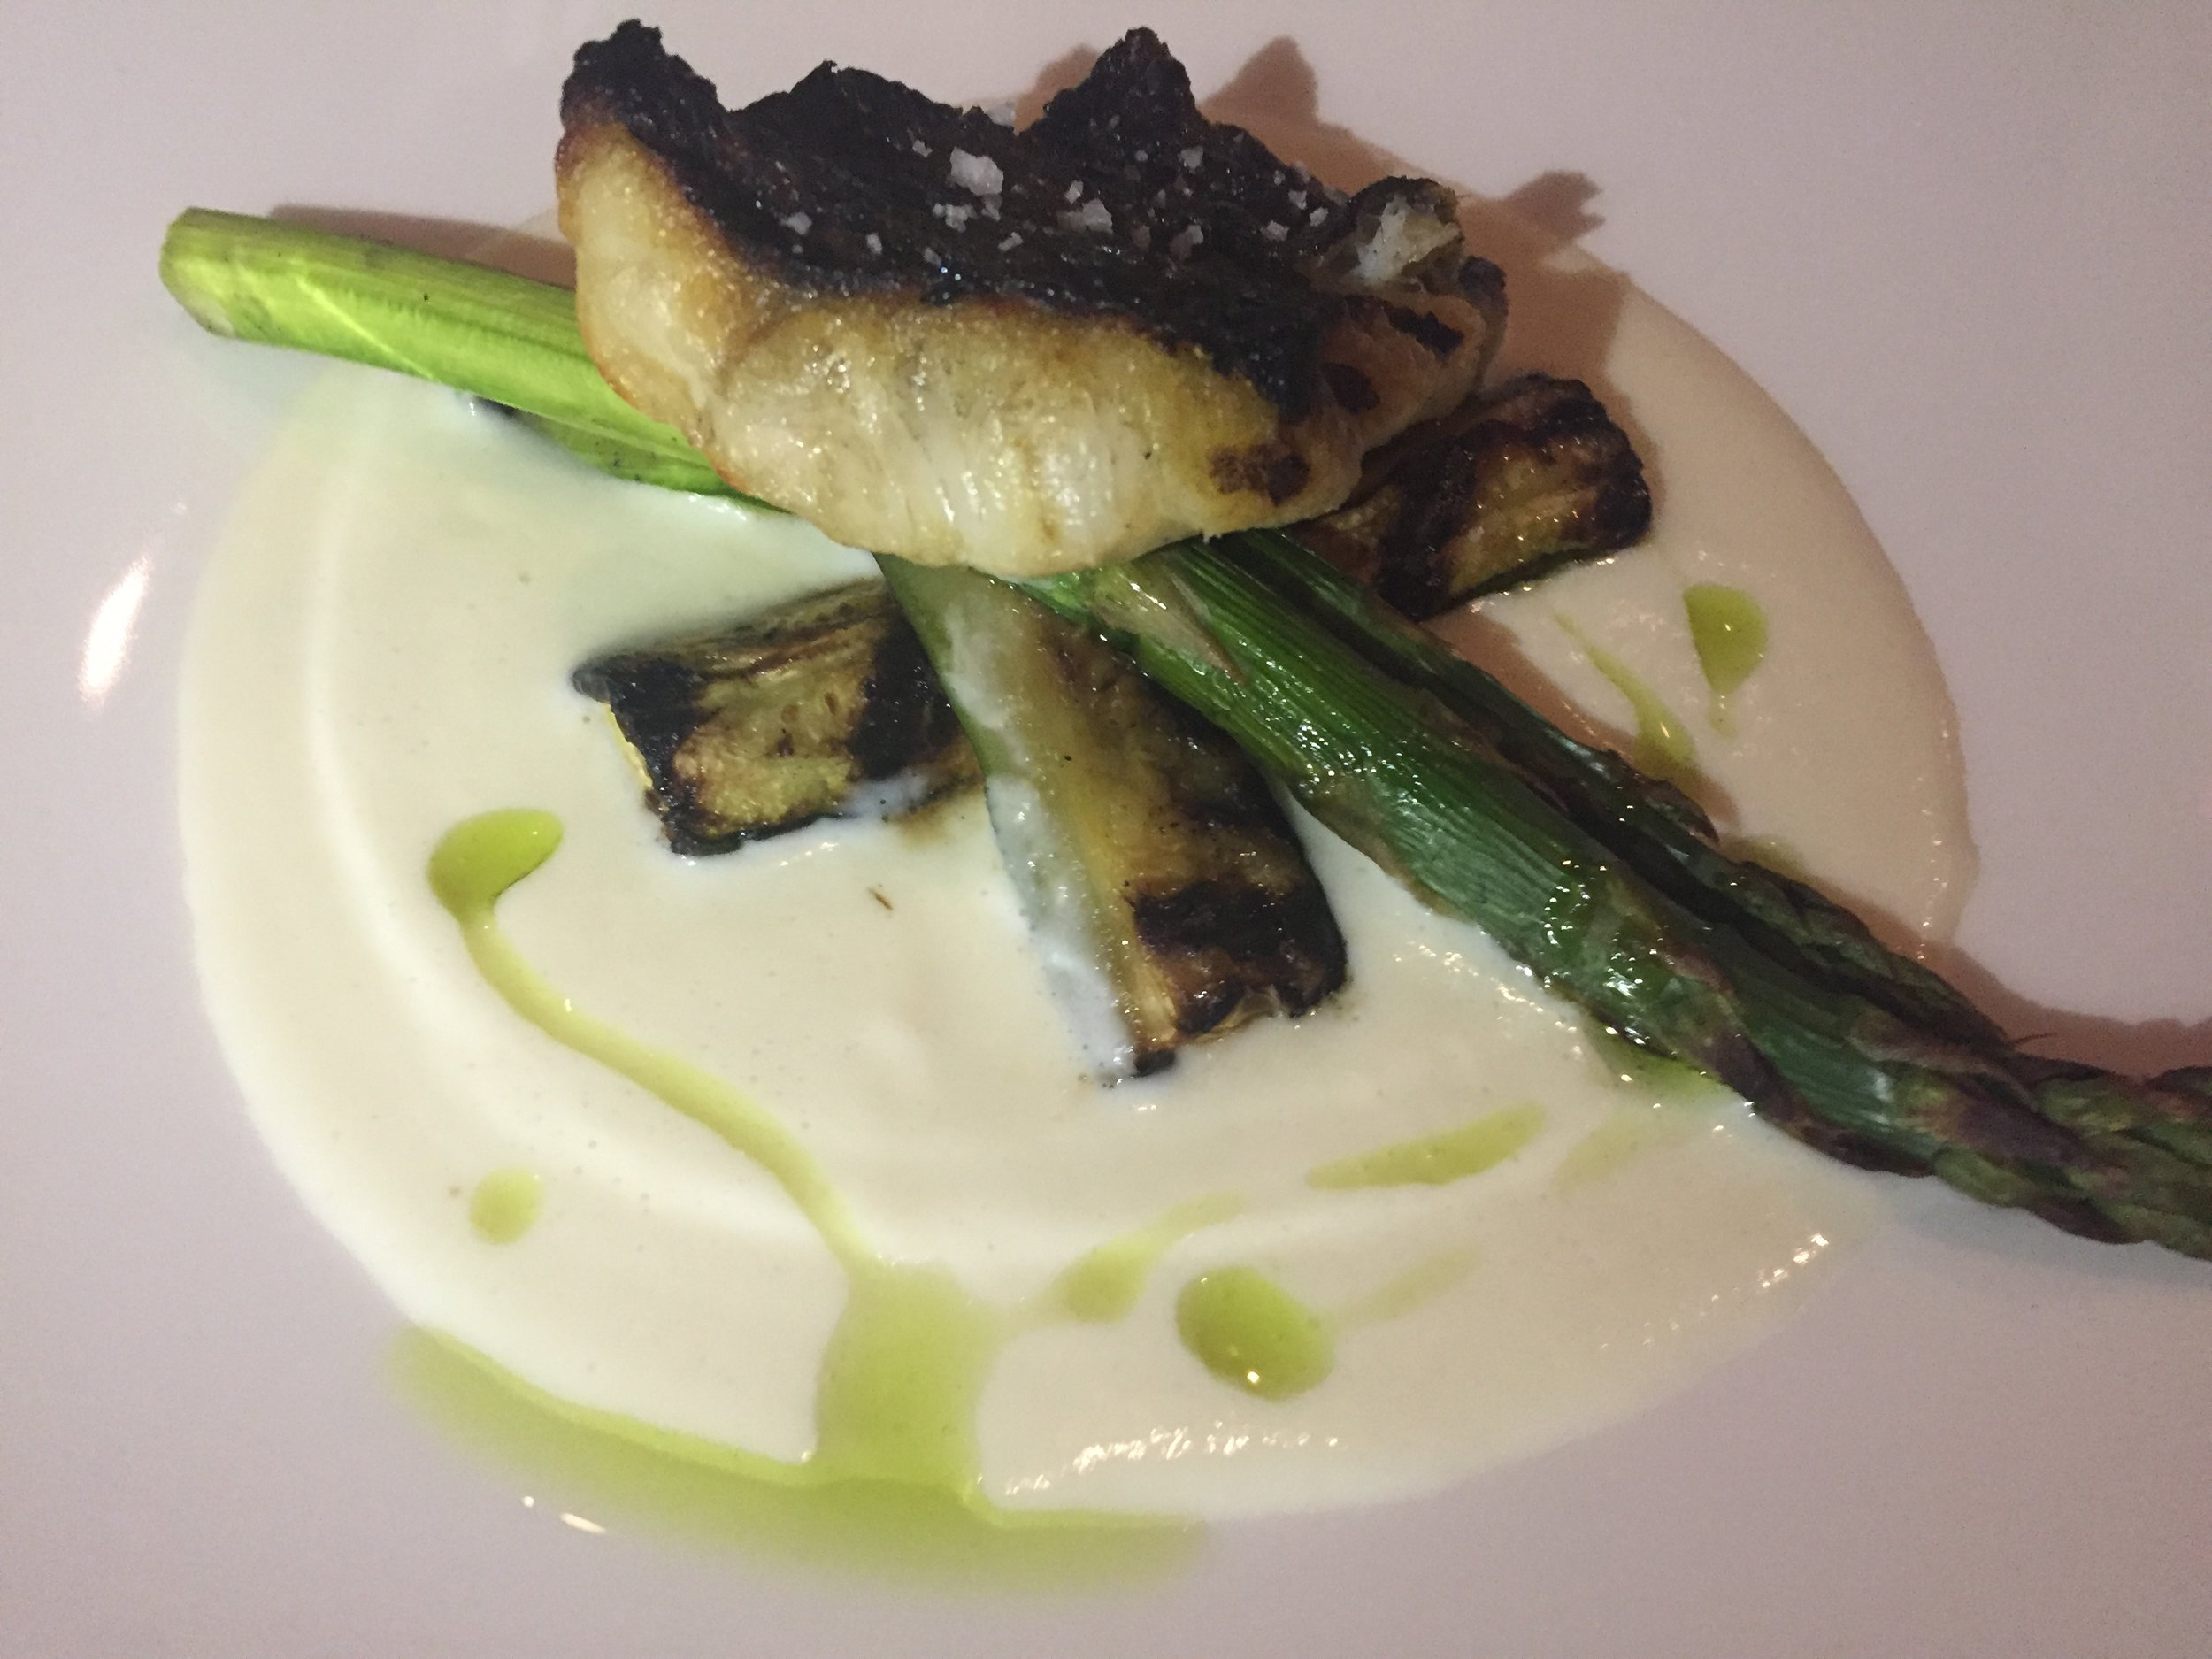 STRIPPED BASS: Grilled stripped bass, parsley root milk, charred zucchini, asparagus and parsley oil.